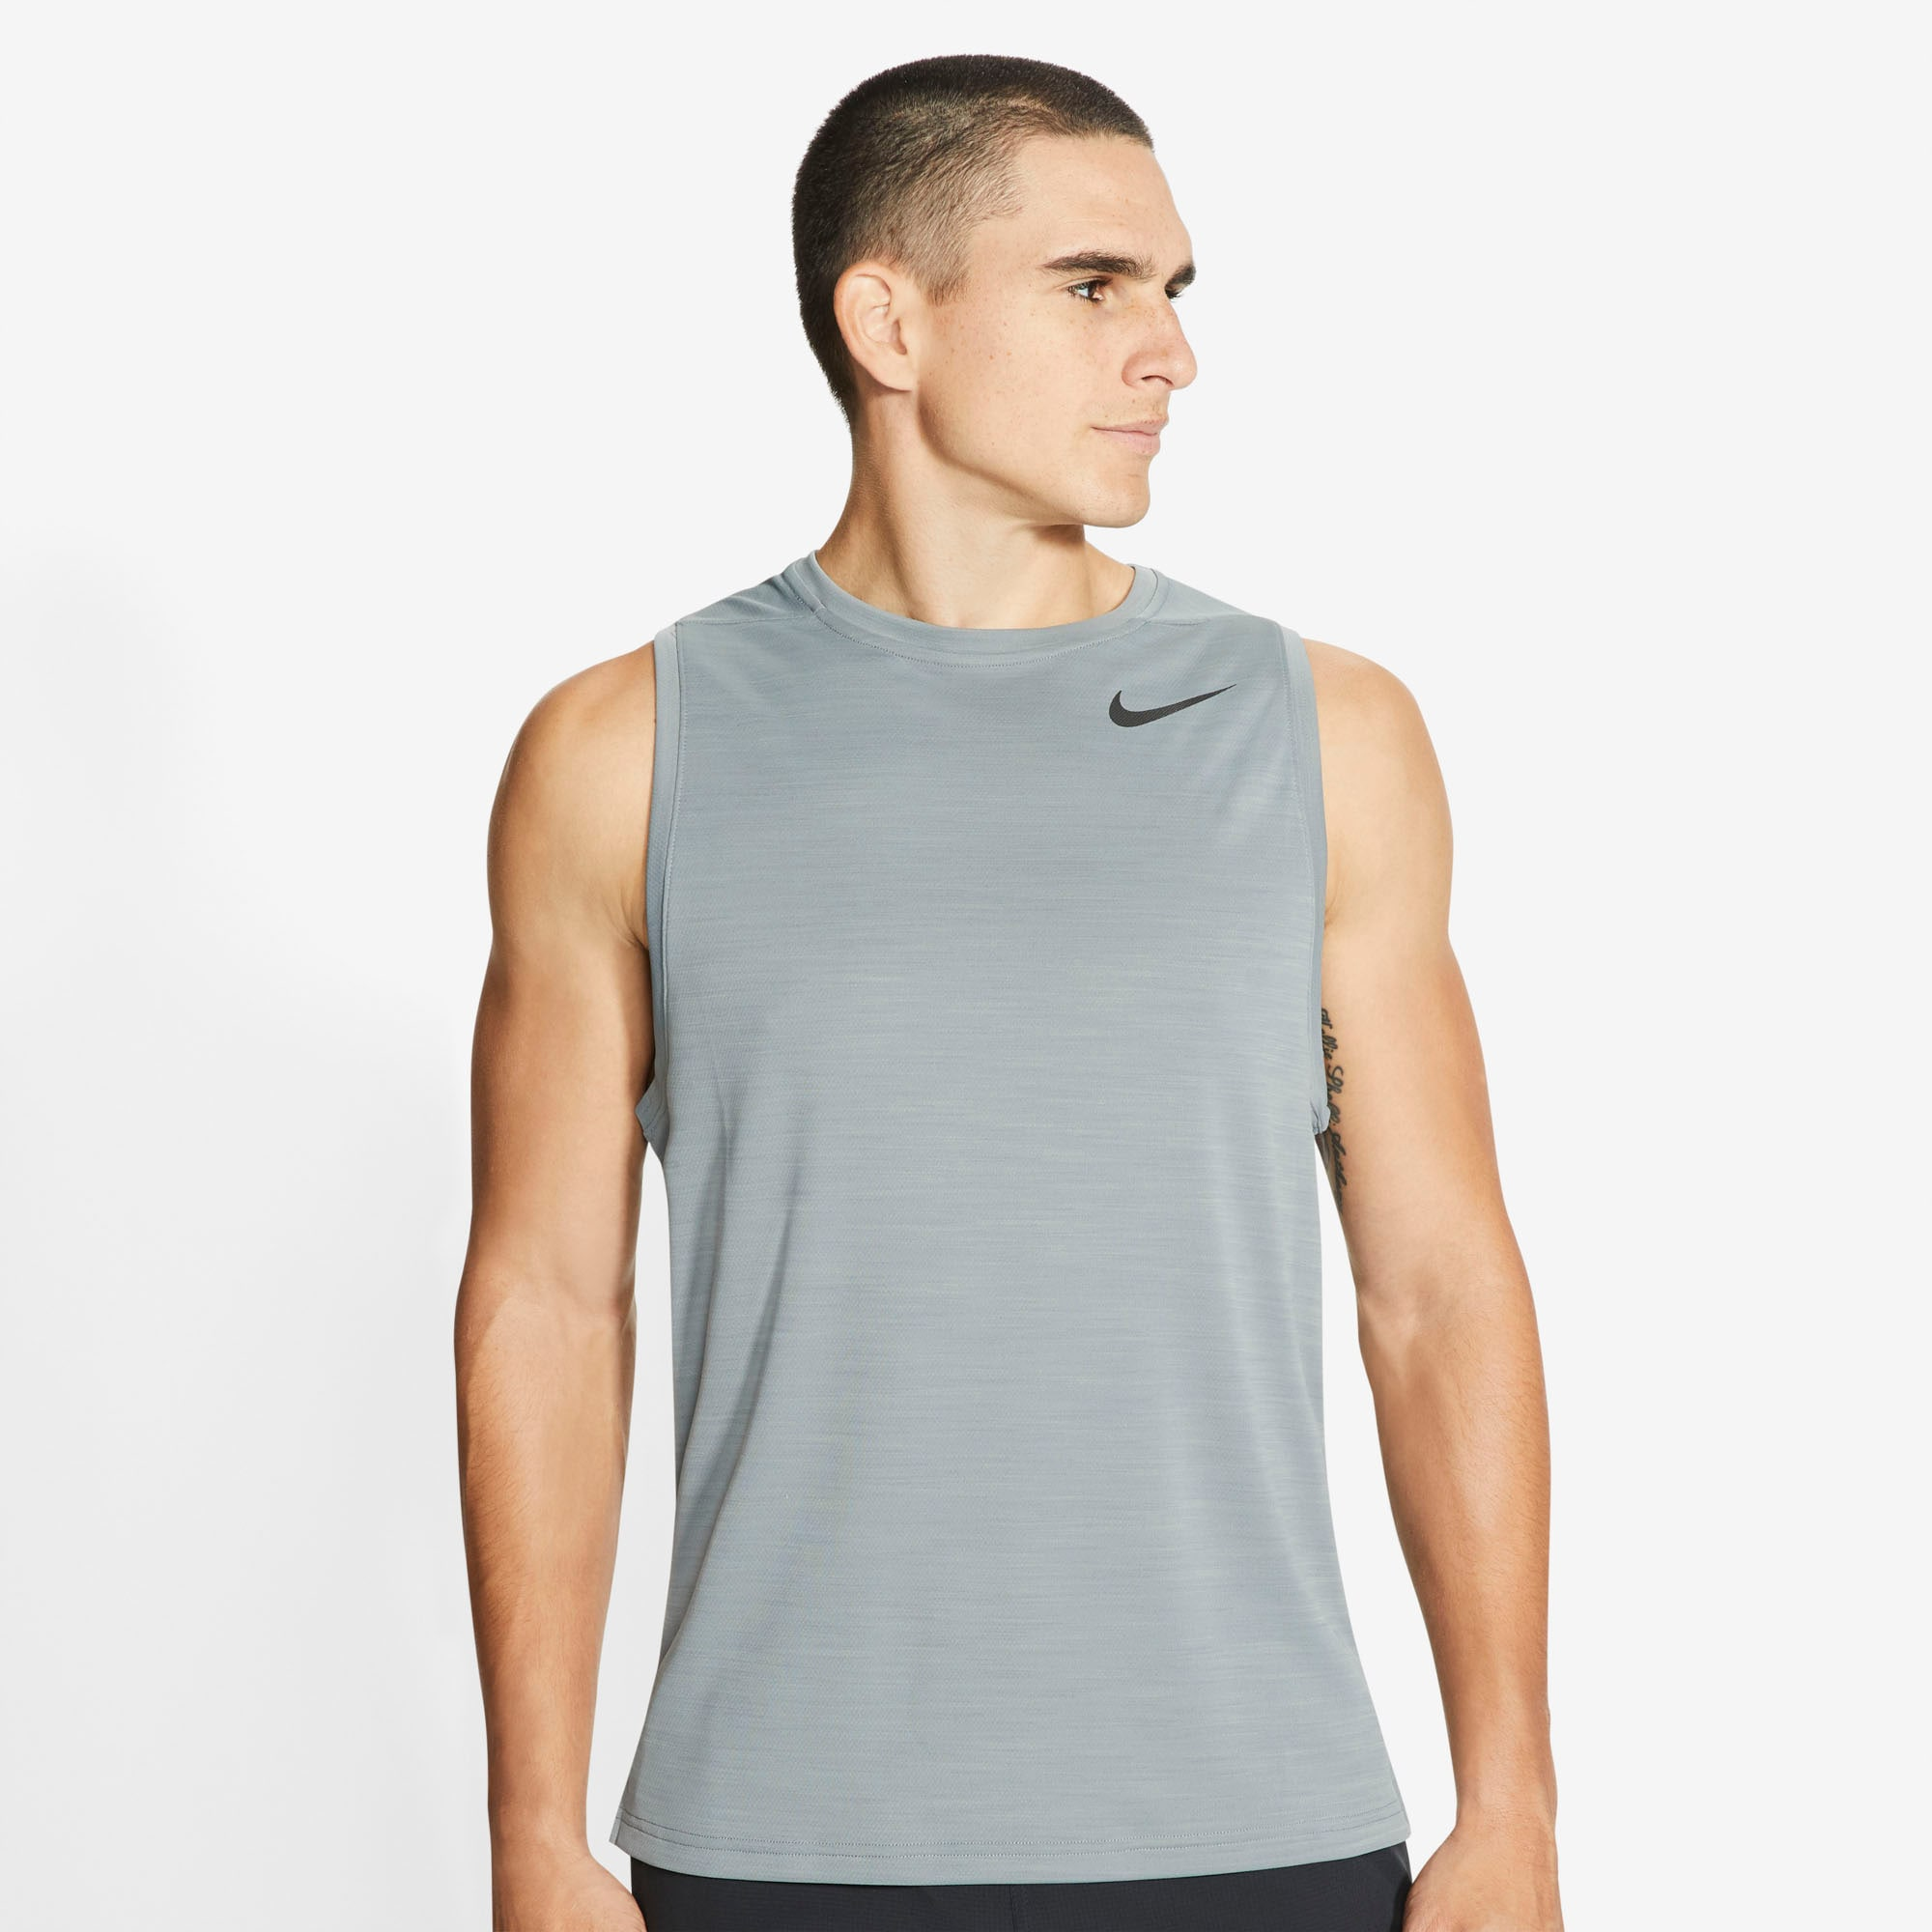 Nike Trainingstop Men's Training Tank grau Herren Tops Shirts